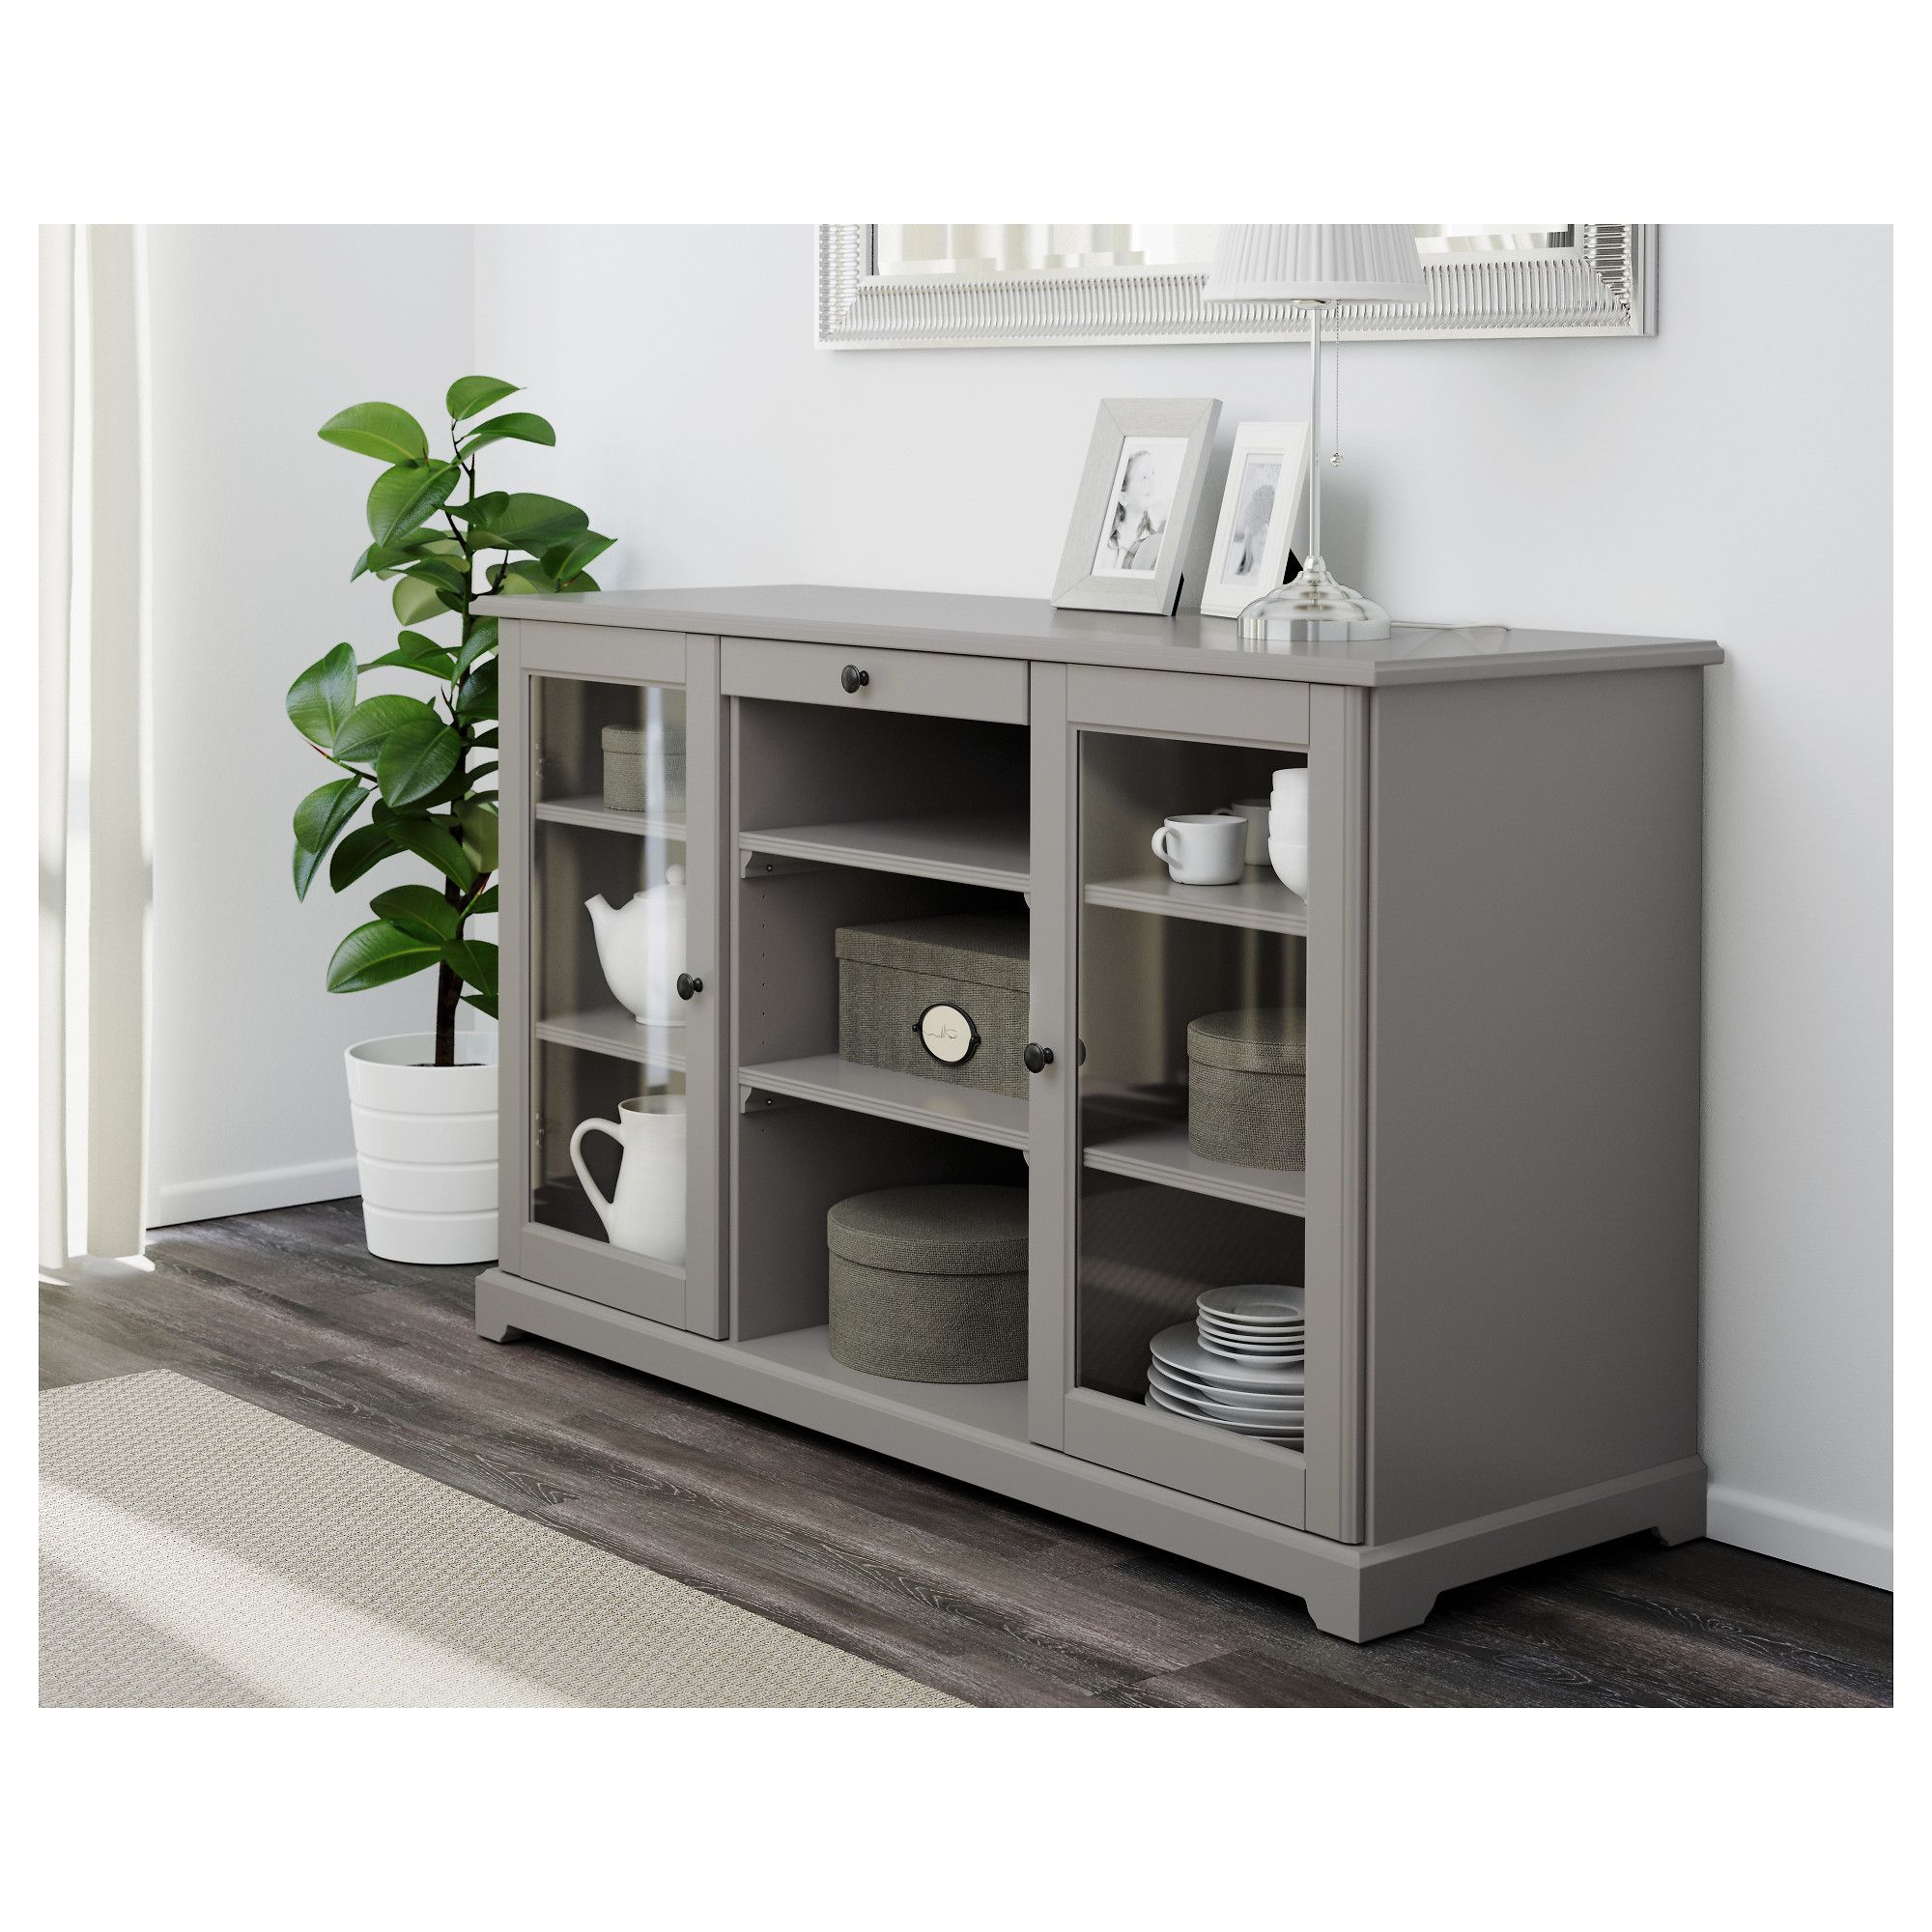 furniture and home furnishings products in 2019 white sideboard ikea dining liatorp